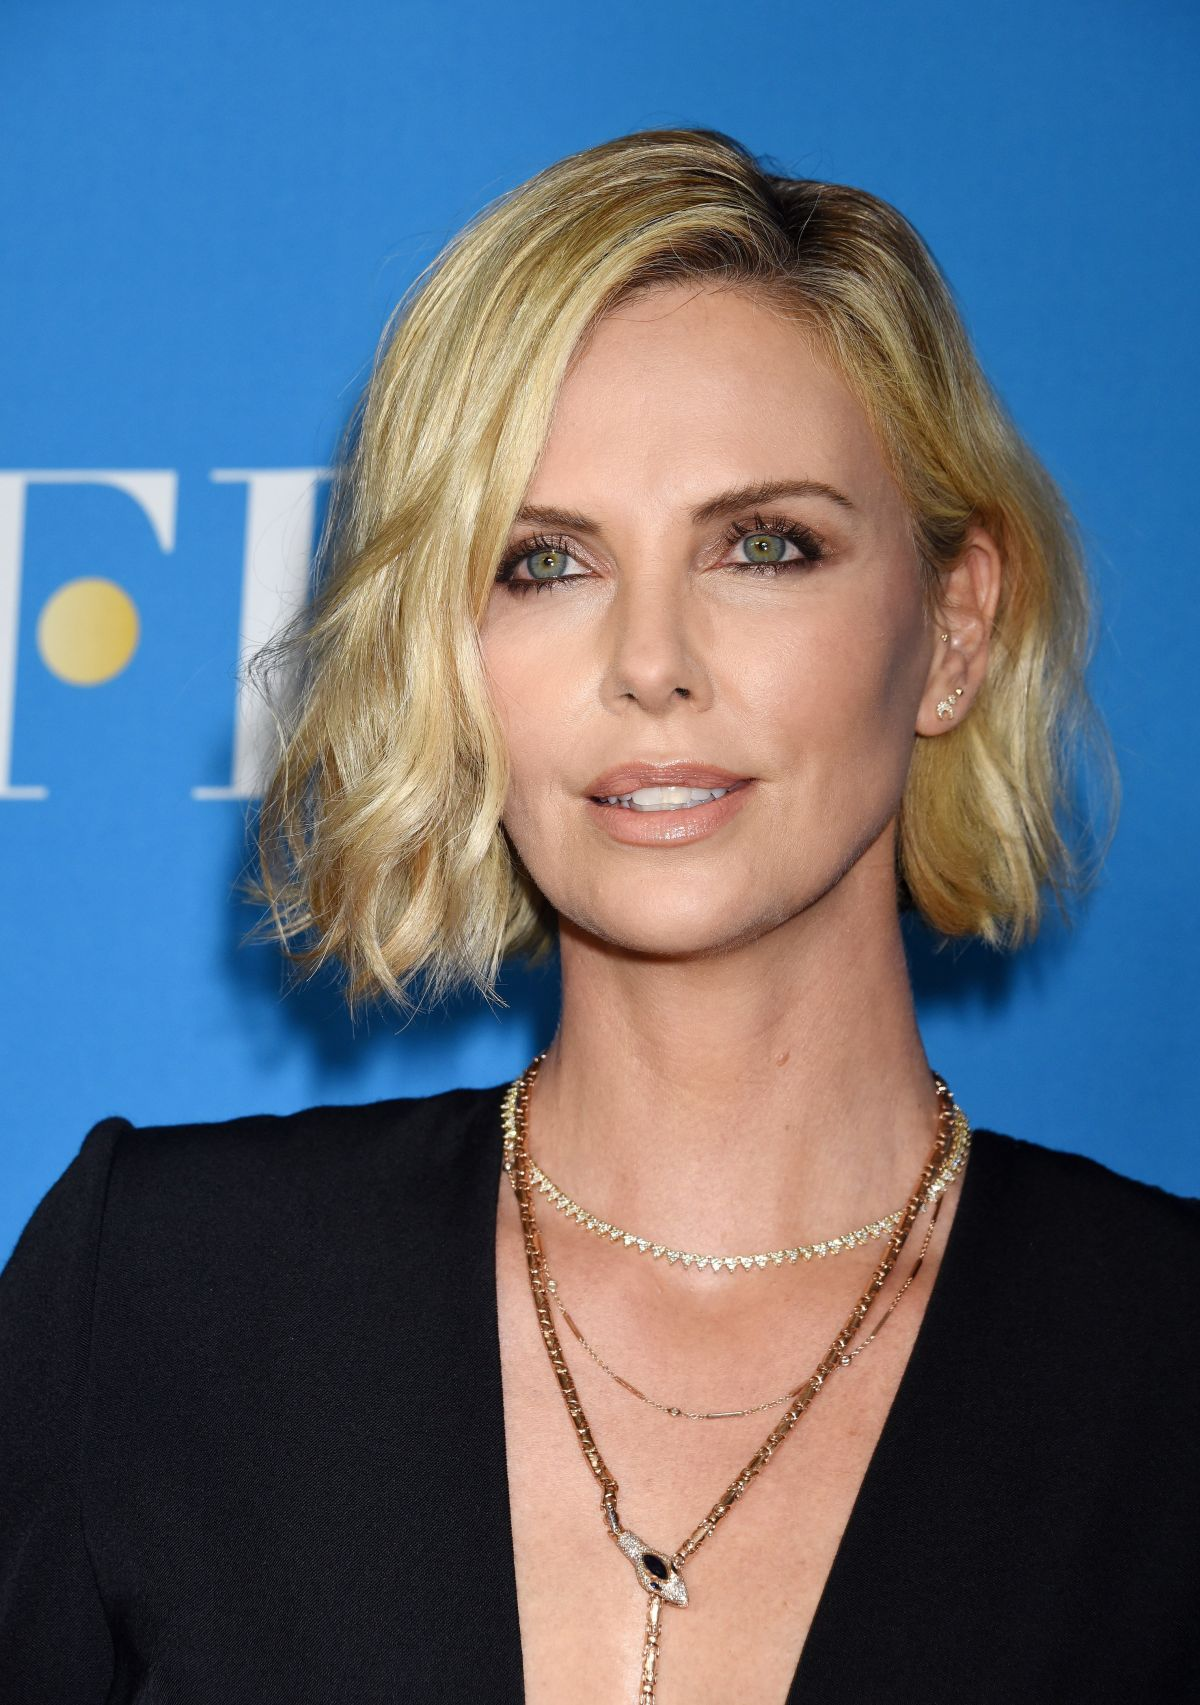 CHARLIZE THERON at Big Screen Achievement Awards ceremony